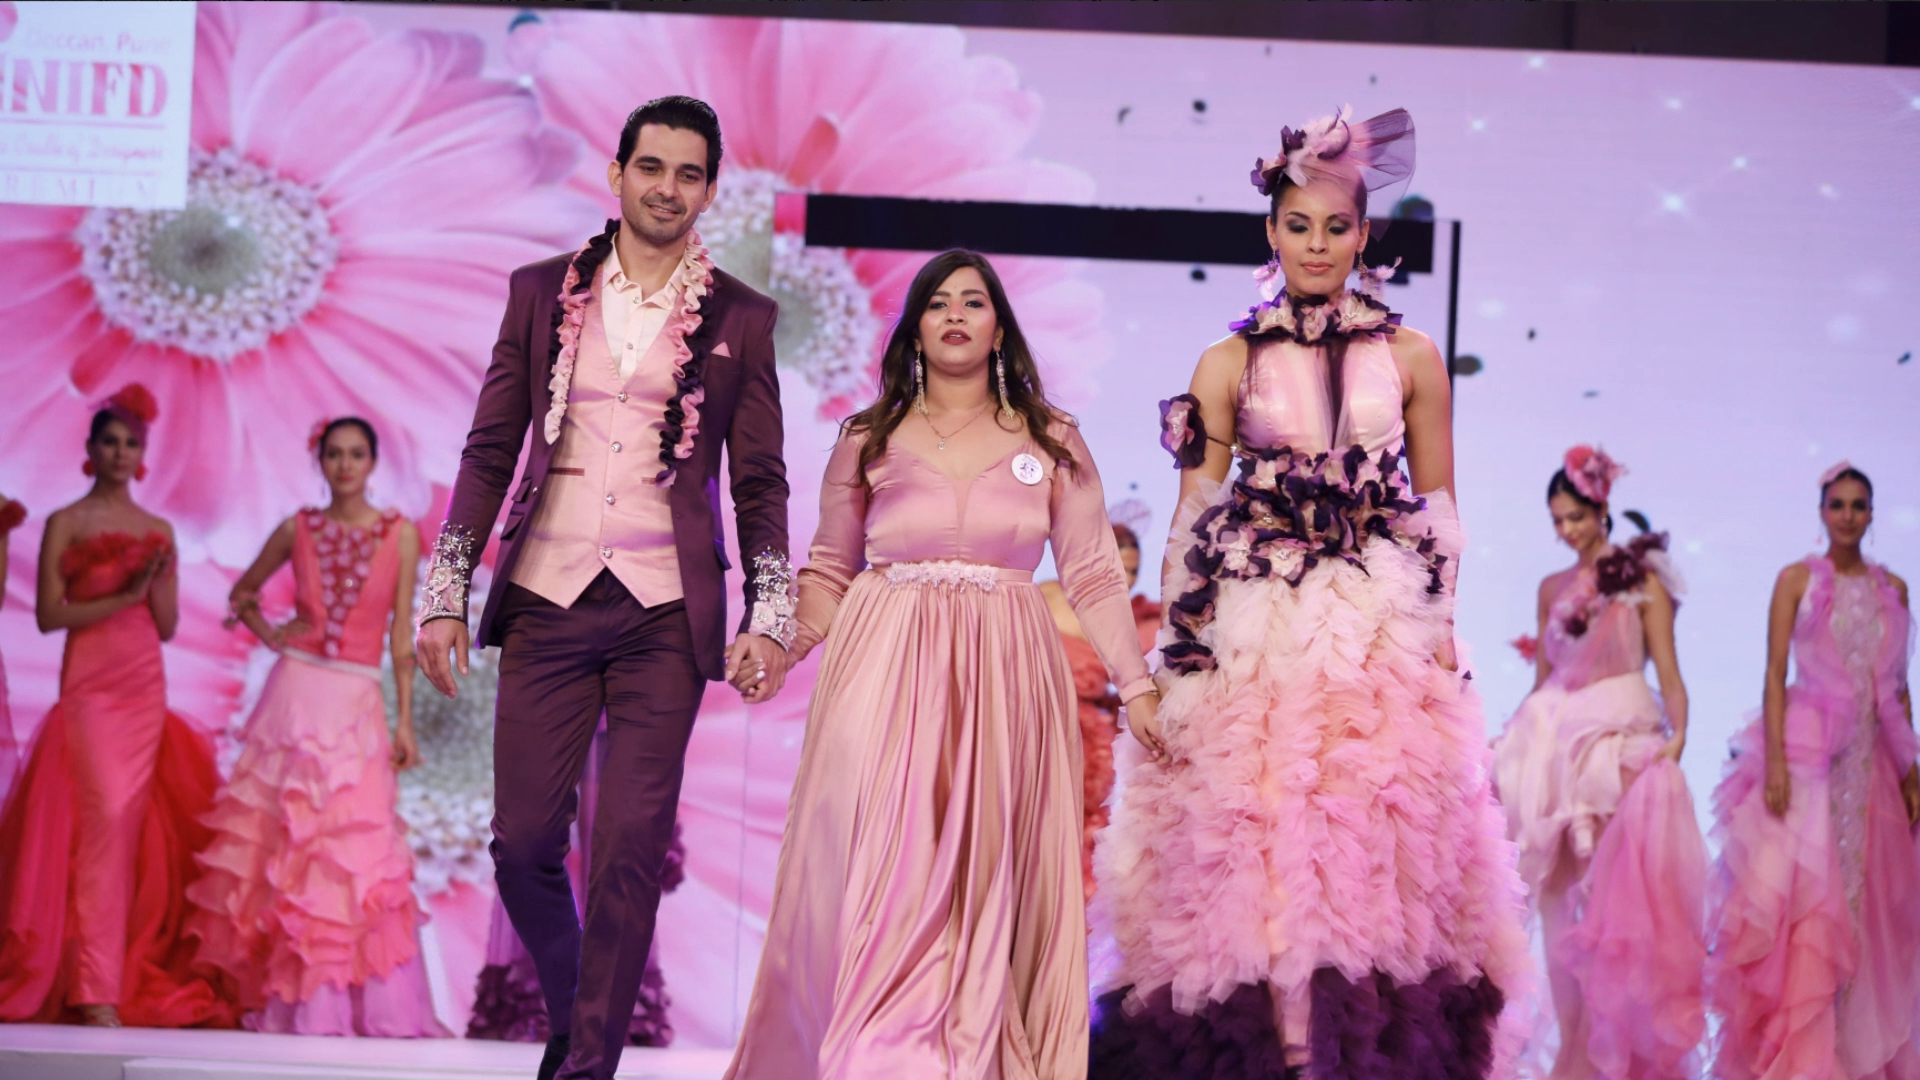 Inter National Institute Of Fashion Design Deccan Pune Courses Fees Placements Ranking Admission 2020